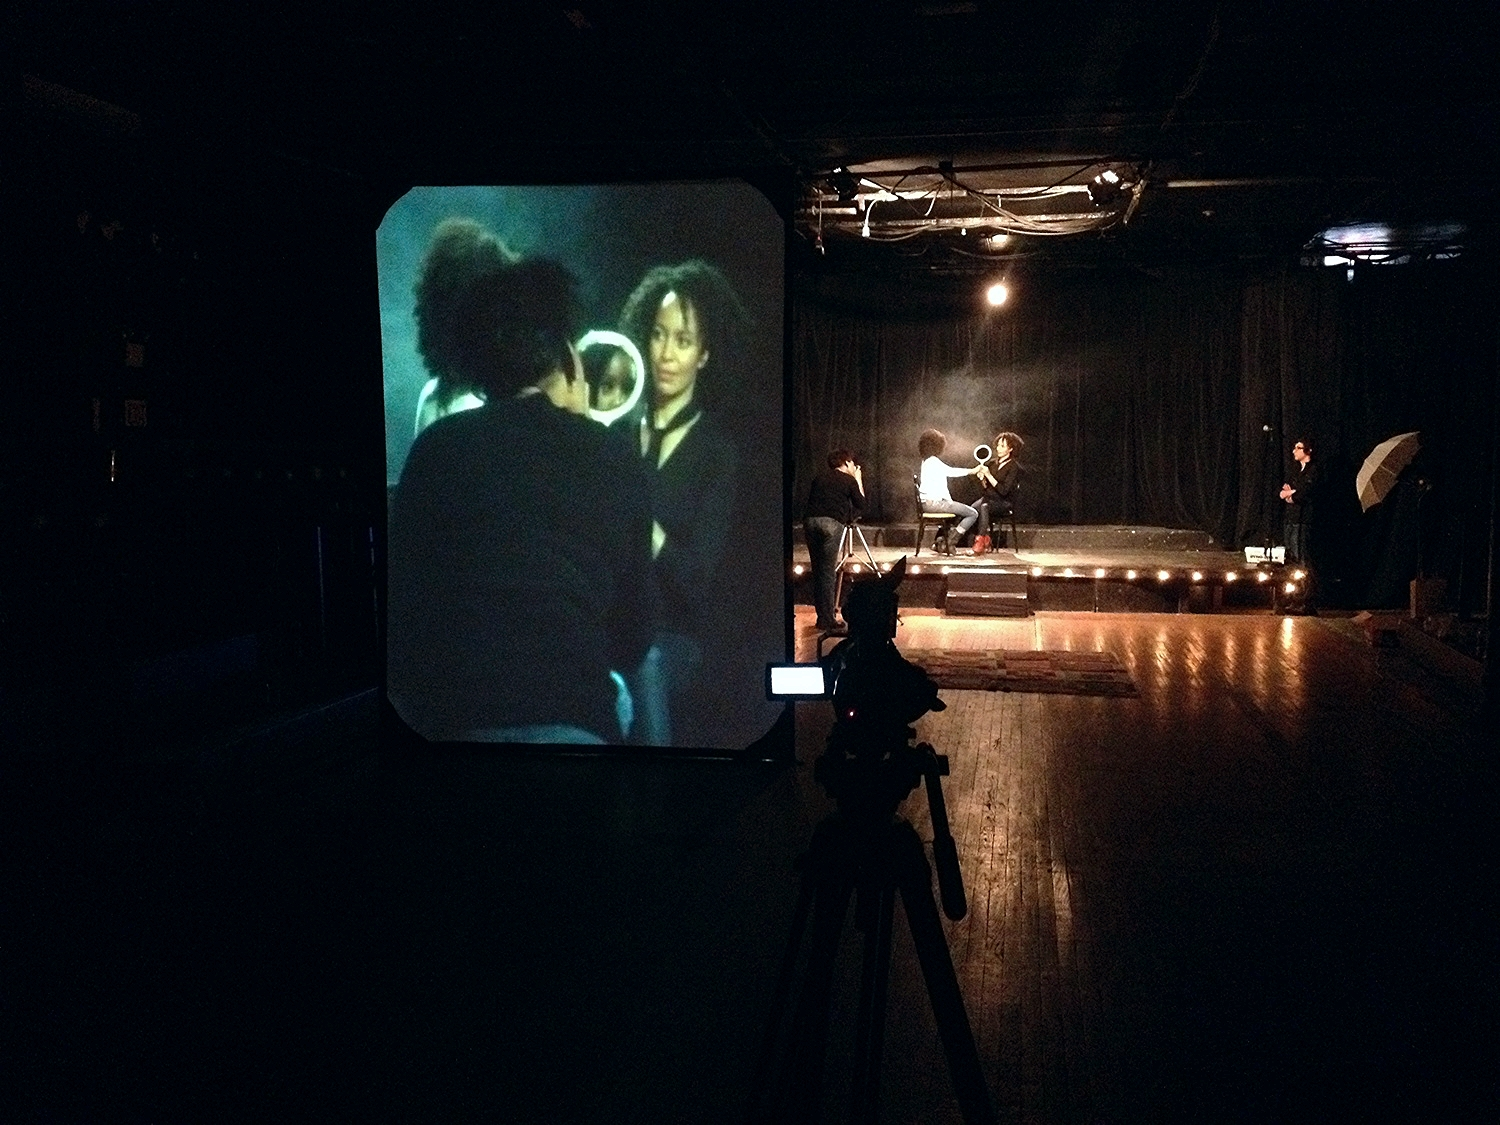 Behind the Scenes, shooting with Carrie Mae Weems